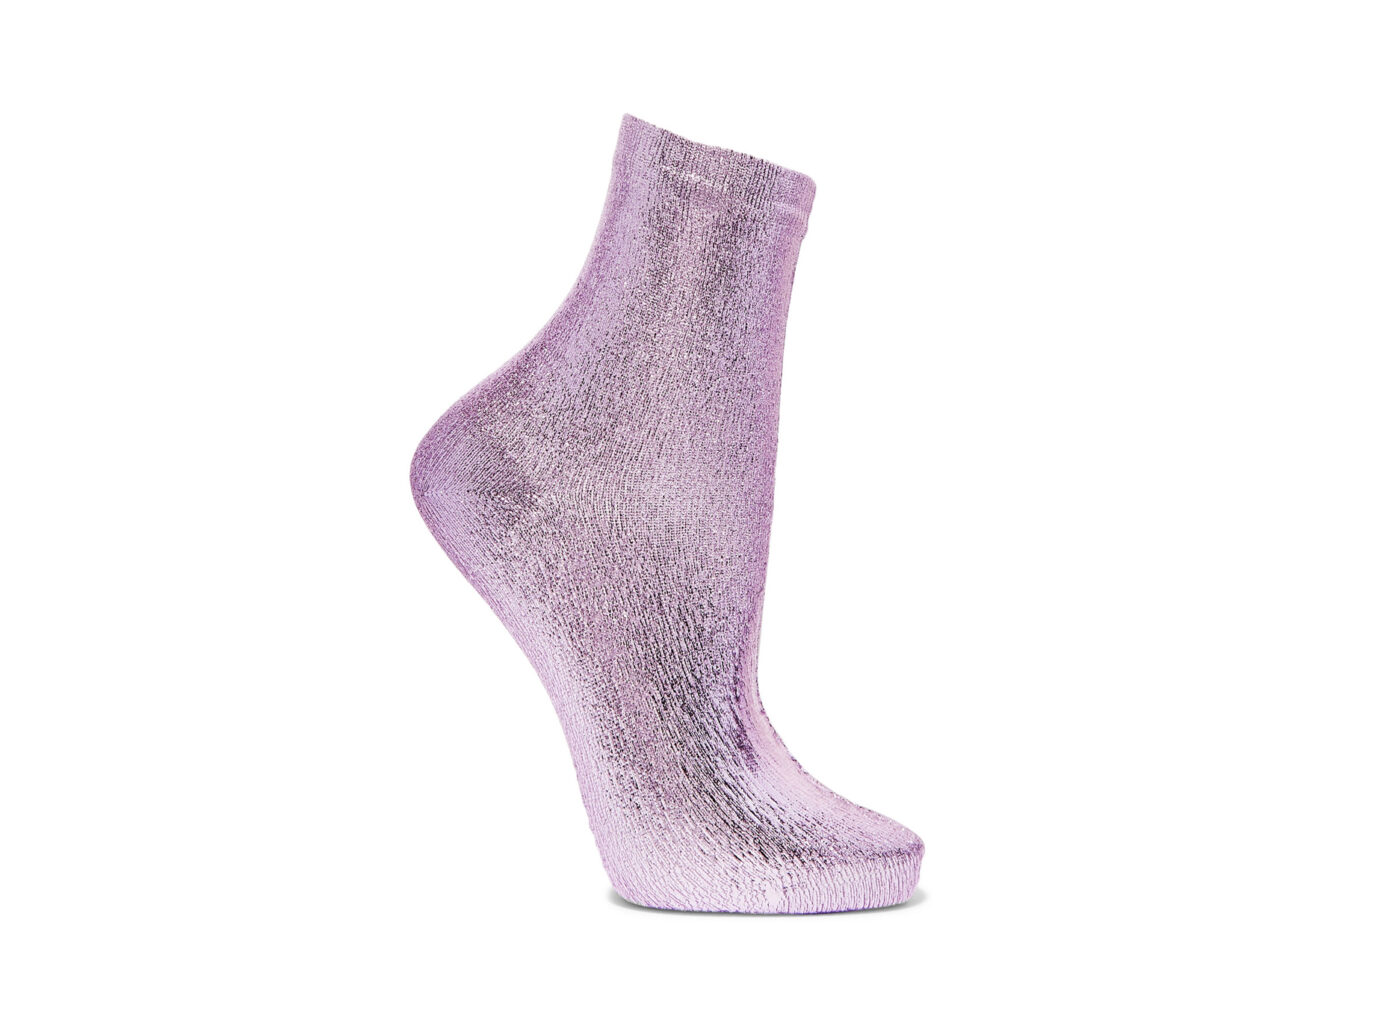 Maria La Rosa Metallic Coated Socks